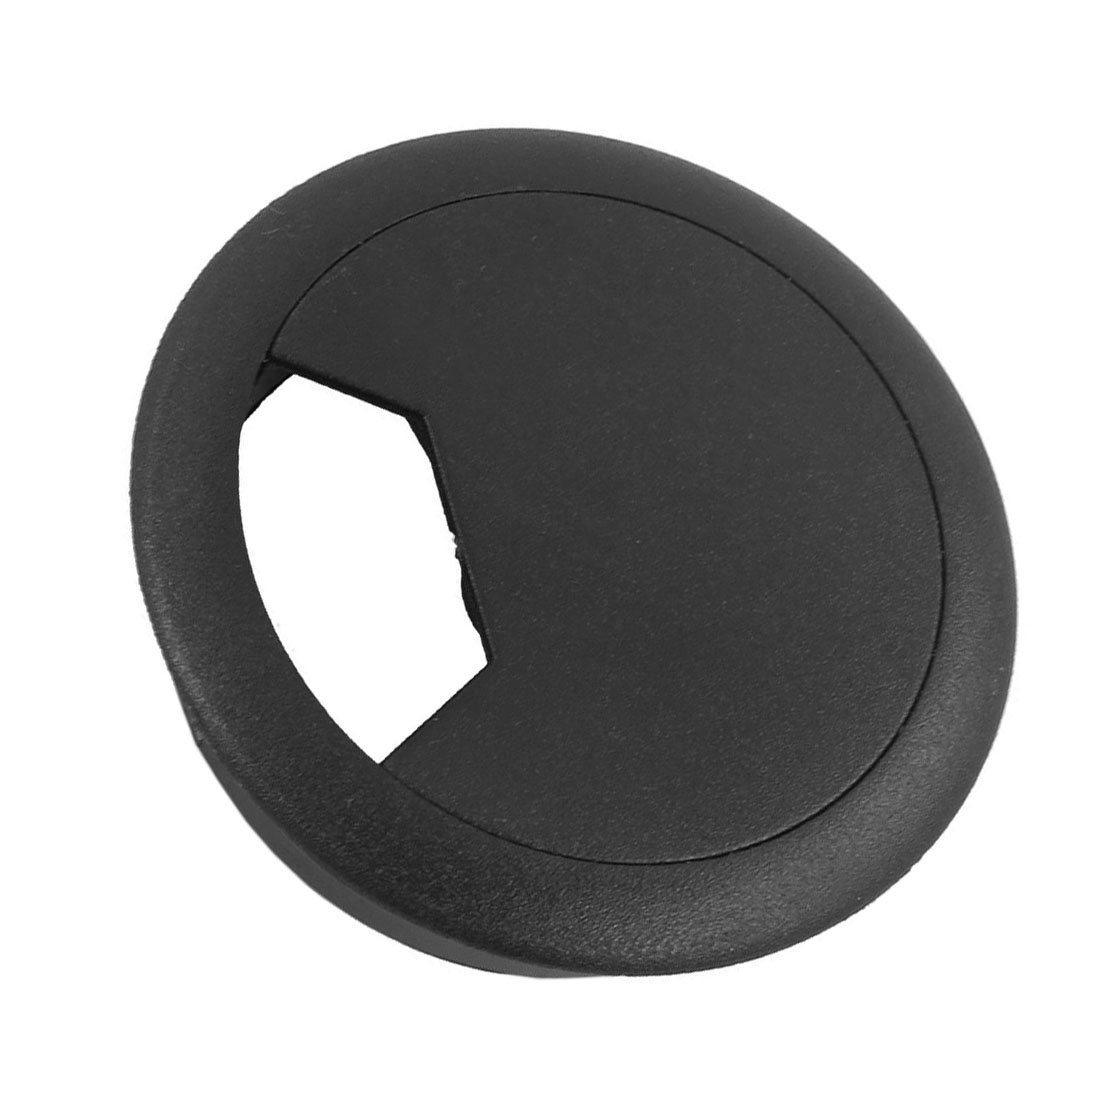 NOCM-2 Pcs 50mm Diameter Desk Wire Cord Cable Grommets Hole Cover Black tfbc black 60mm round grommet cable hole cover for computer desk 5 pcs